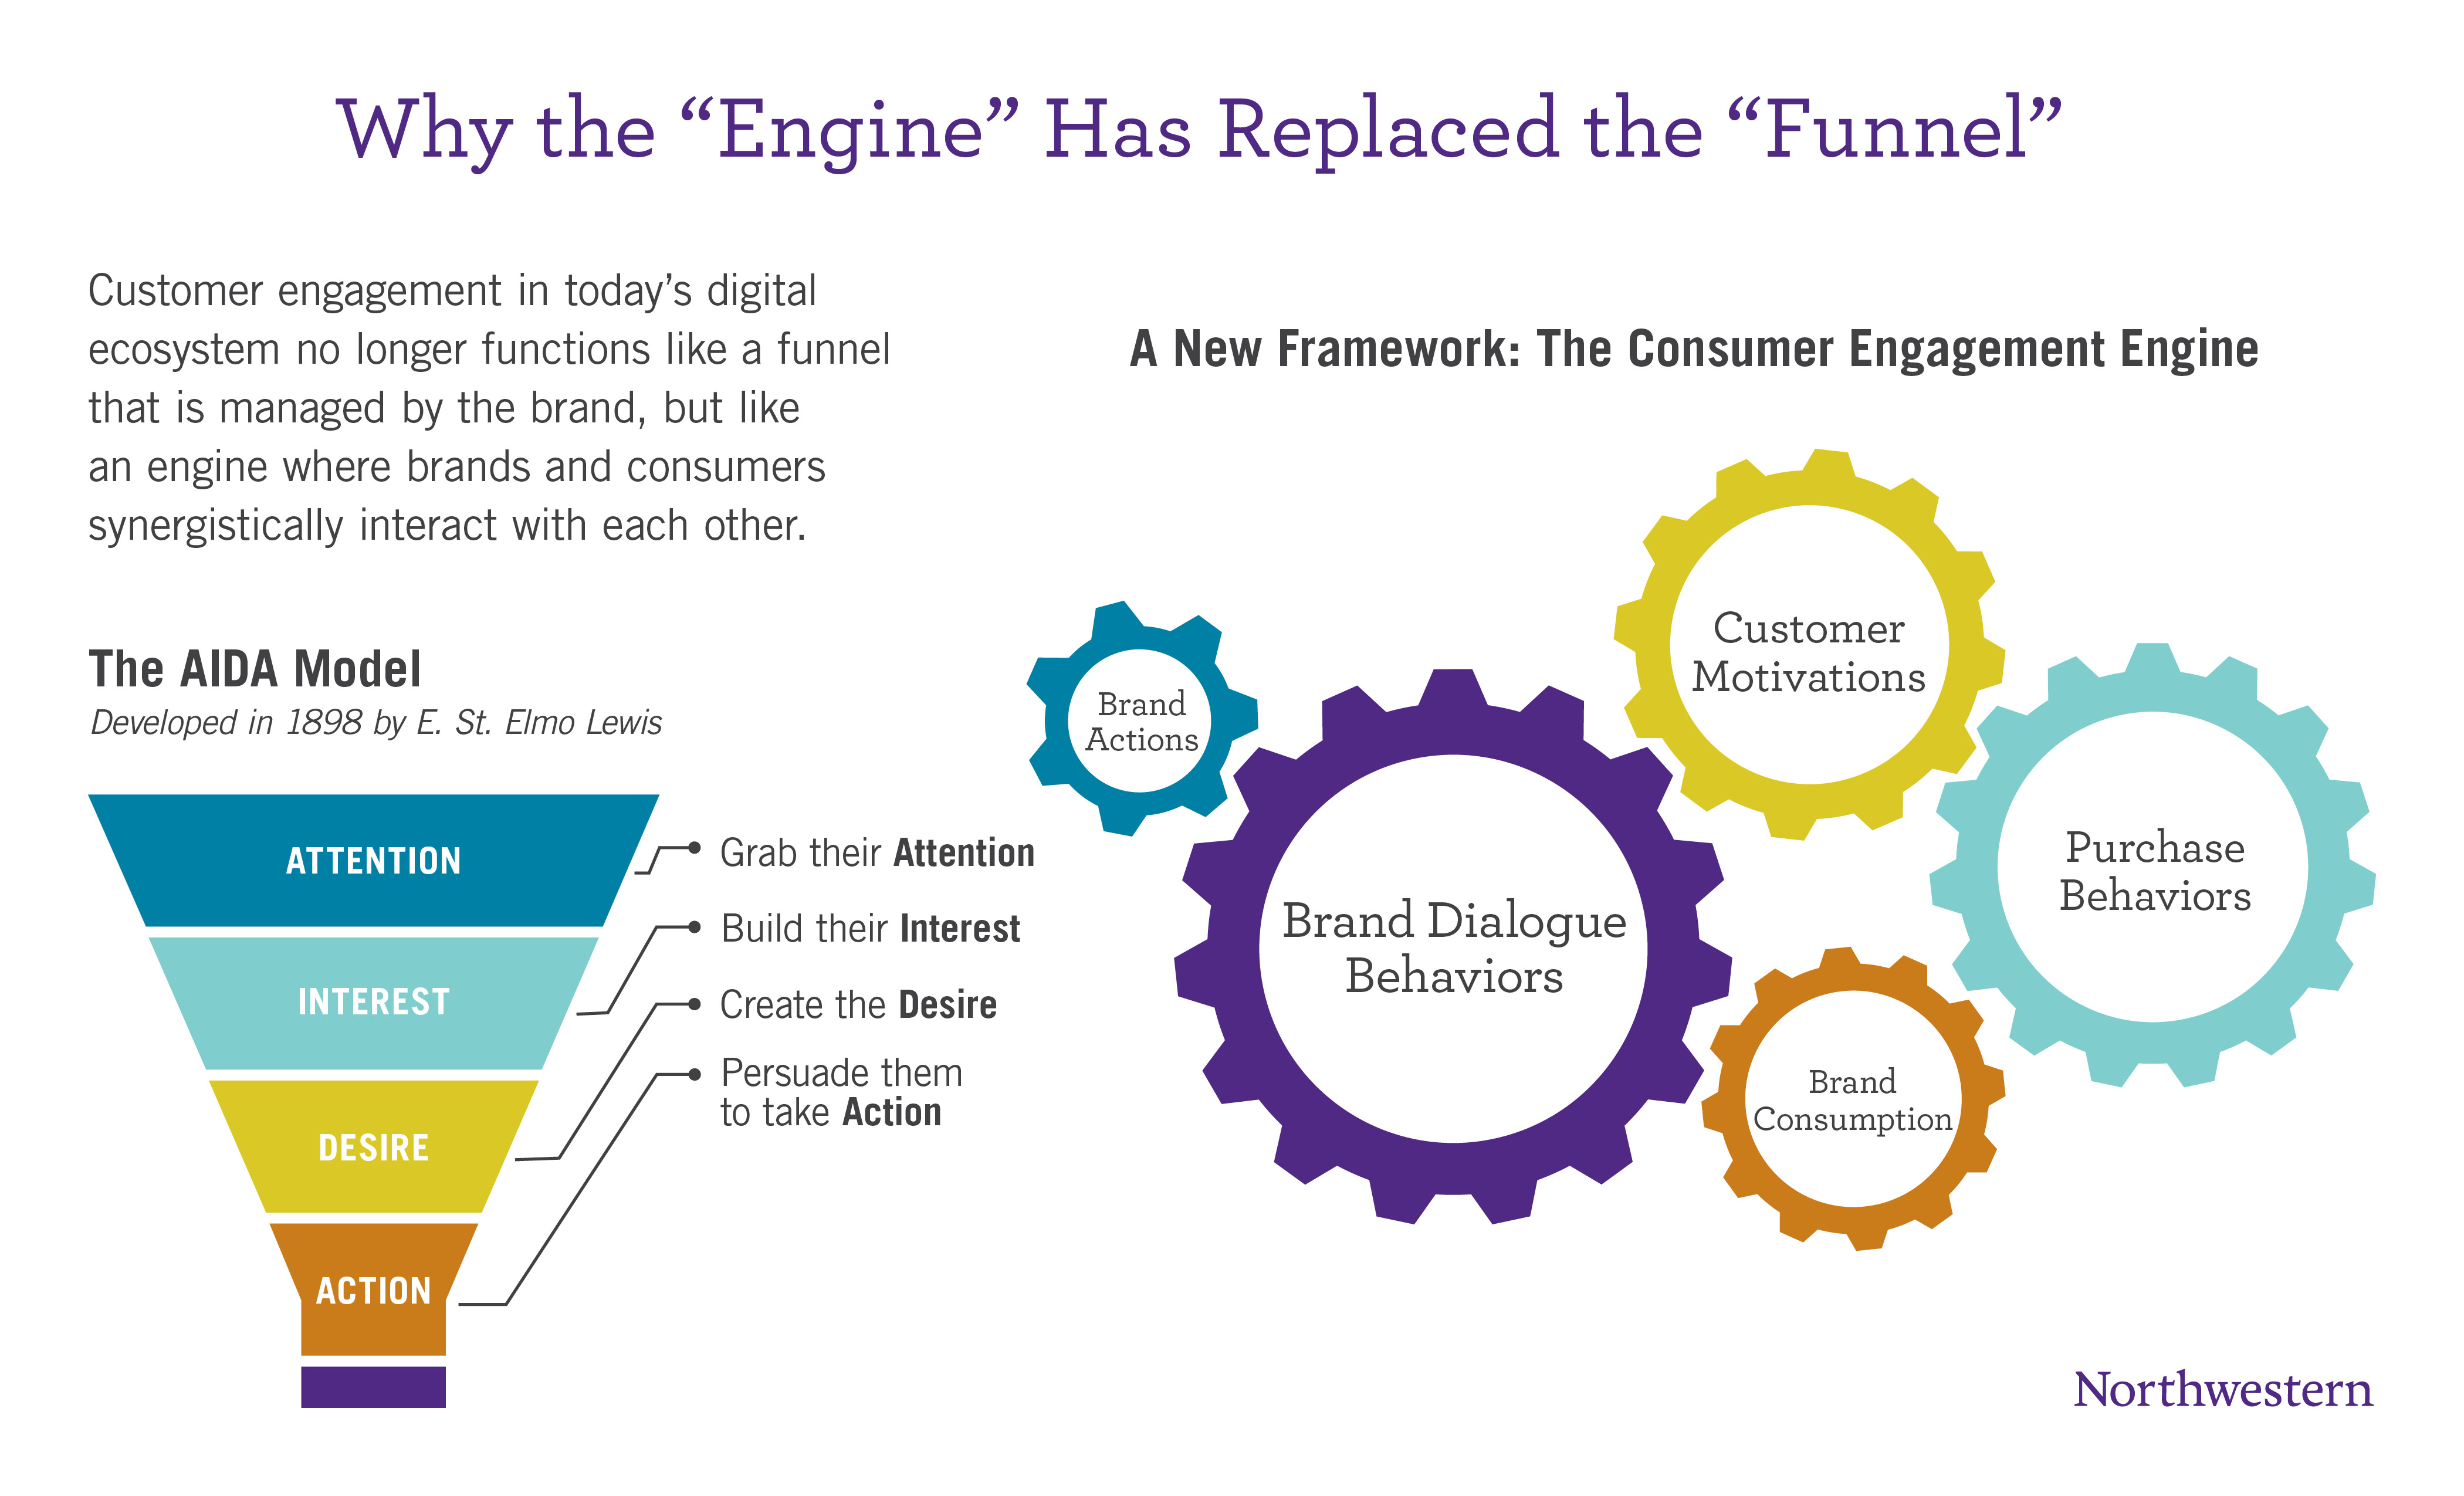 Engine Combo Graphic 2 - Engaging customers - not just the tech, it's about the right mix